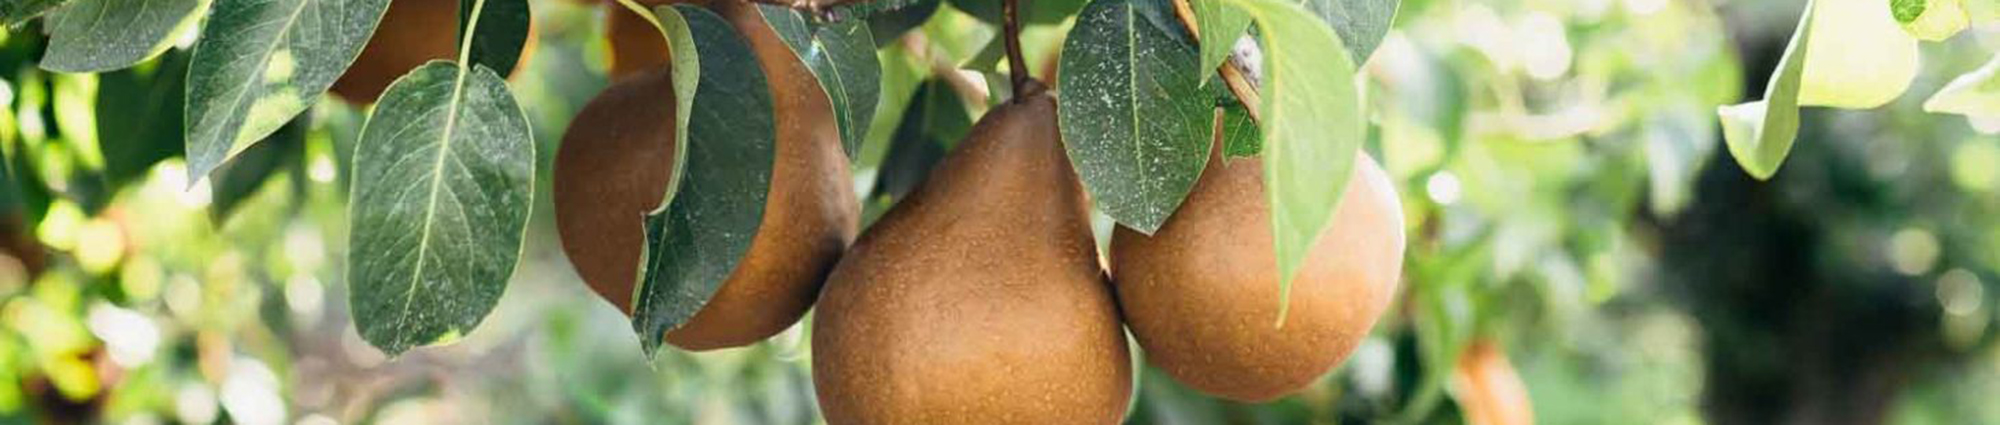 California grown bosc pear tree orchard